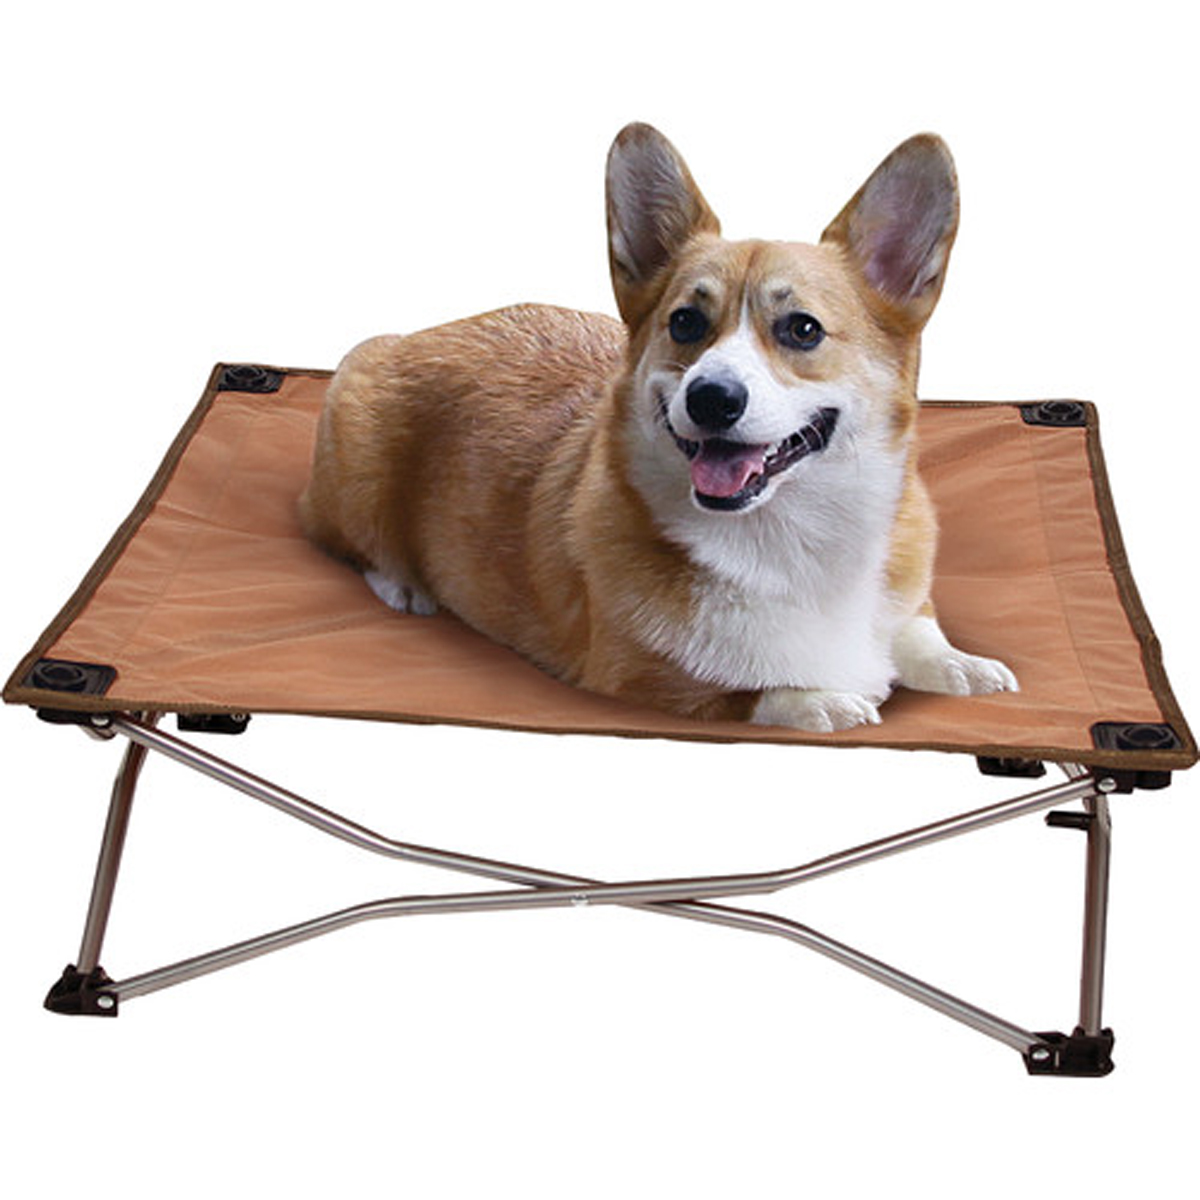 Carlson Portable Pup Travel Dog Bed - Tan